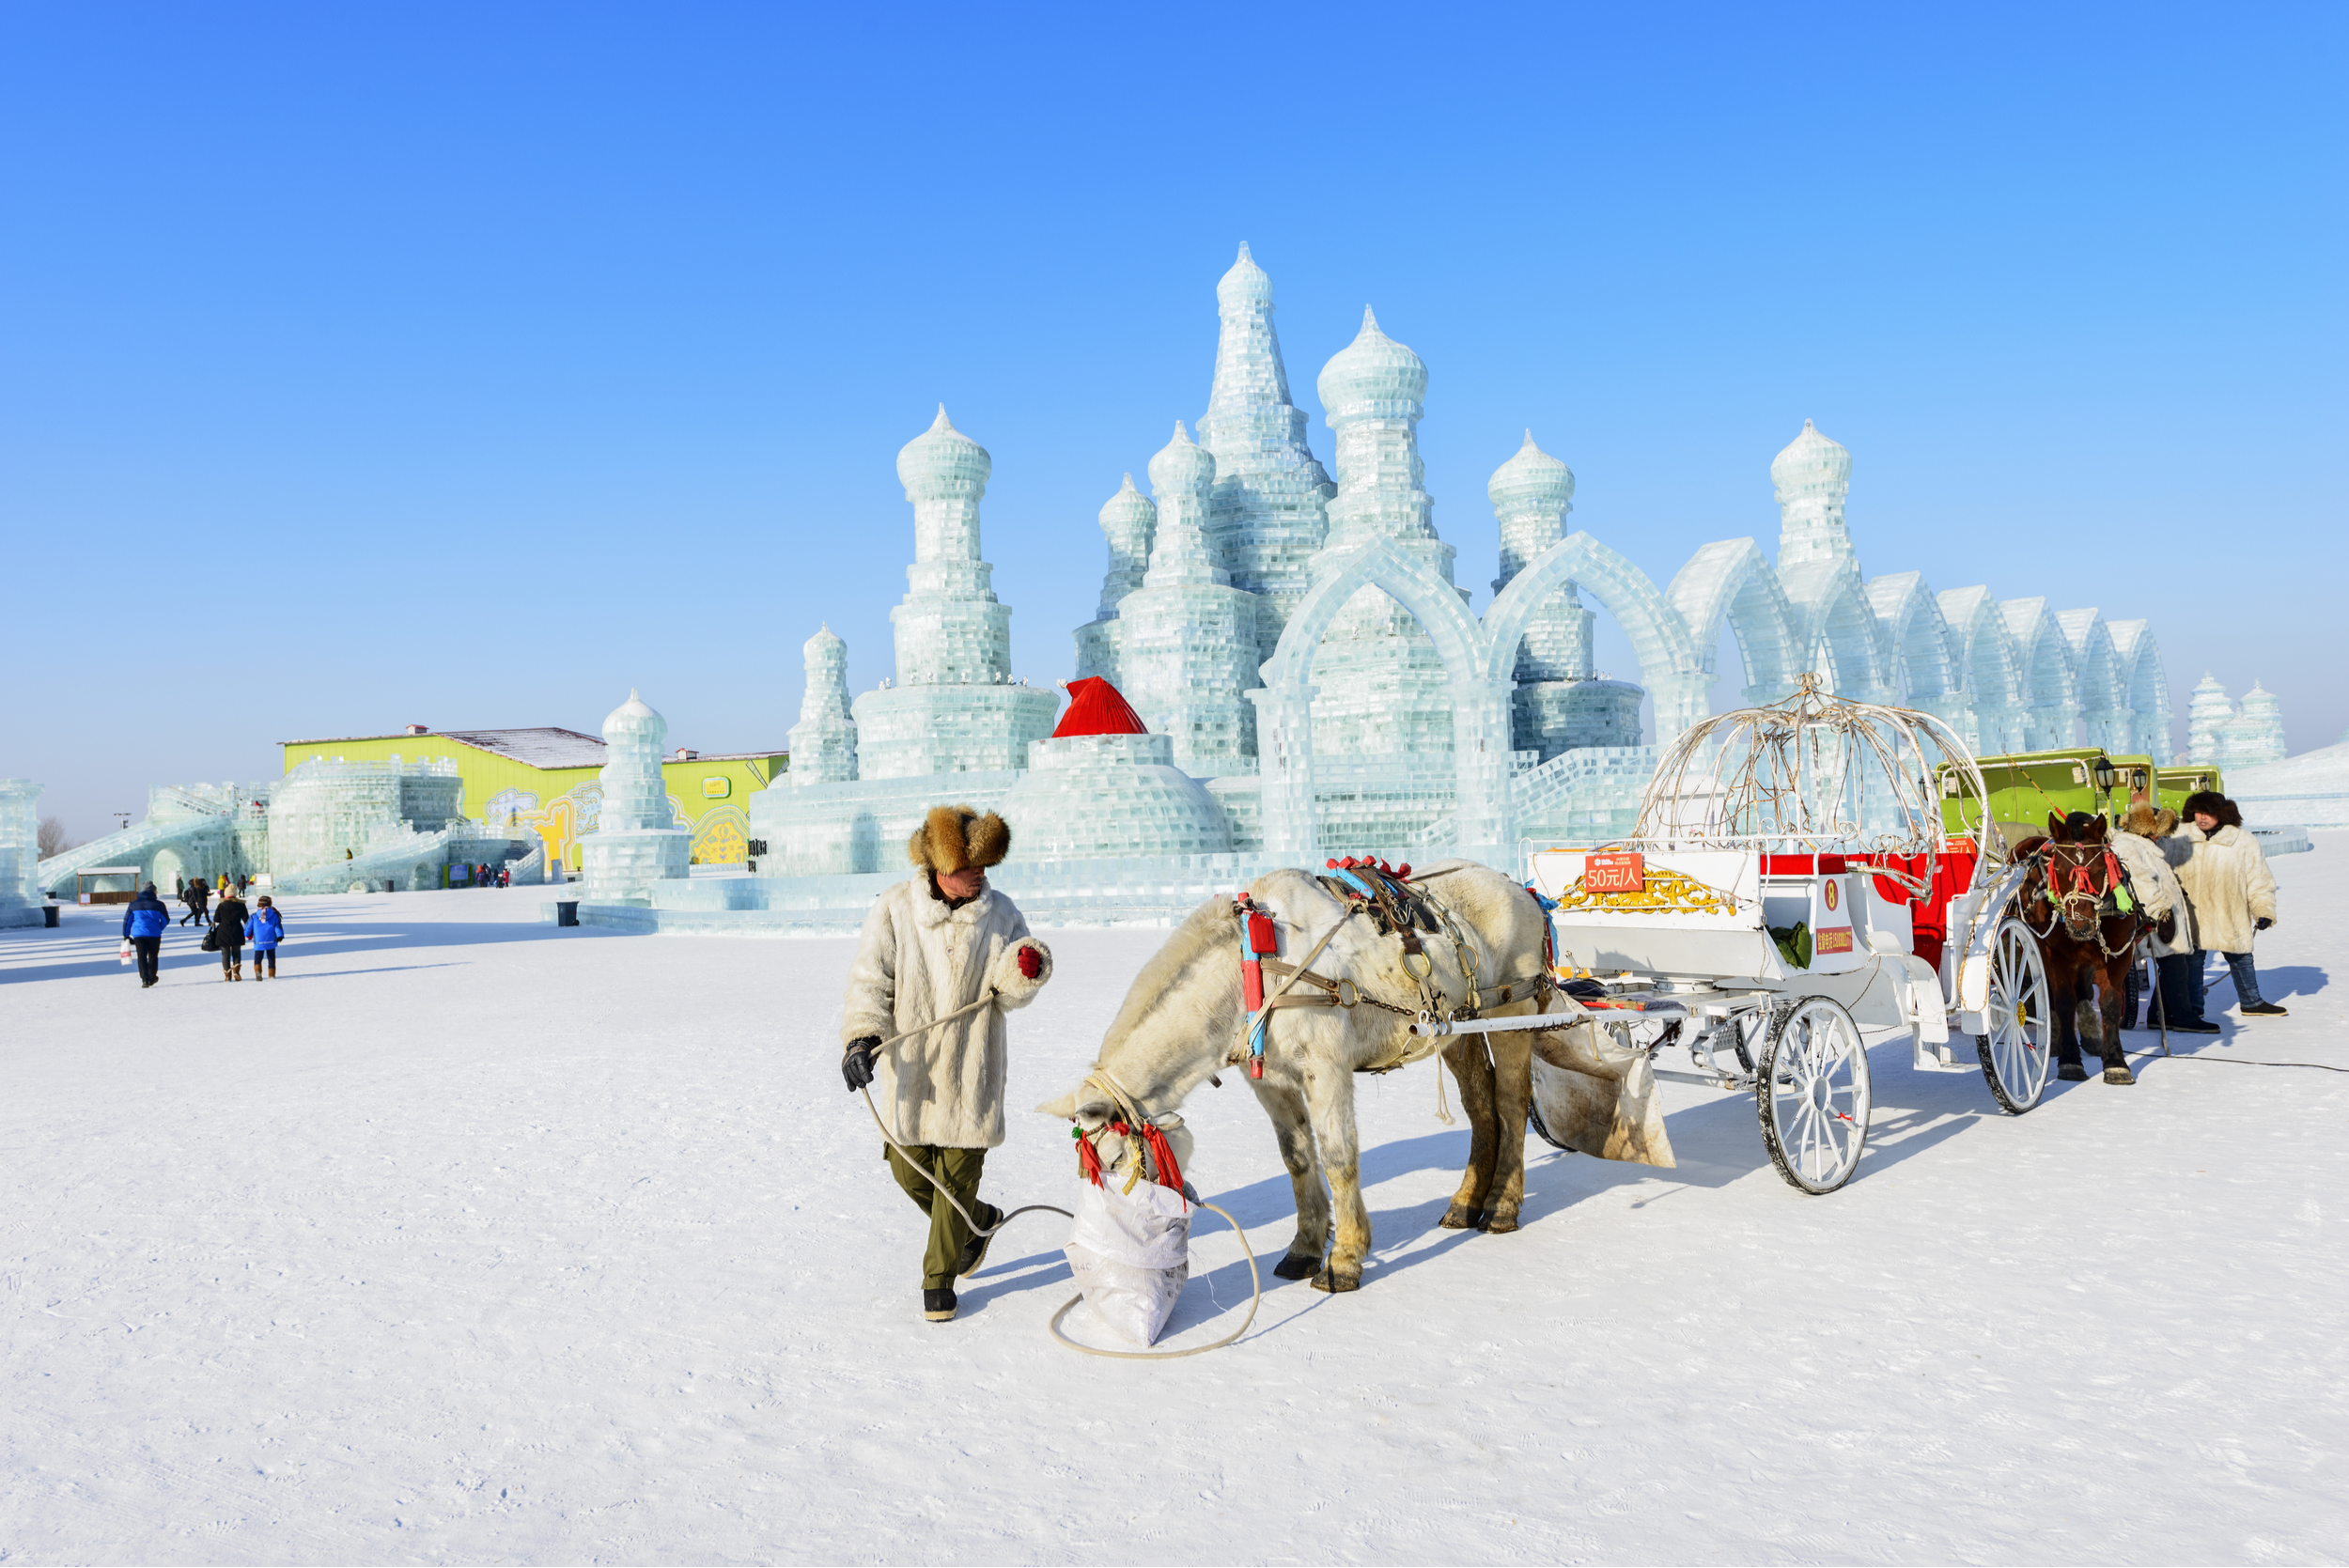 4 Whimsical Icy Attractions You Can Only Visit This Season — Catch These Frozen Fun Before They're Gone